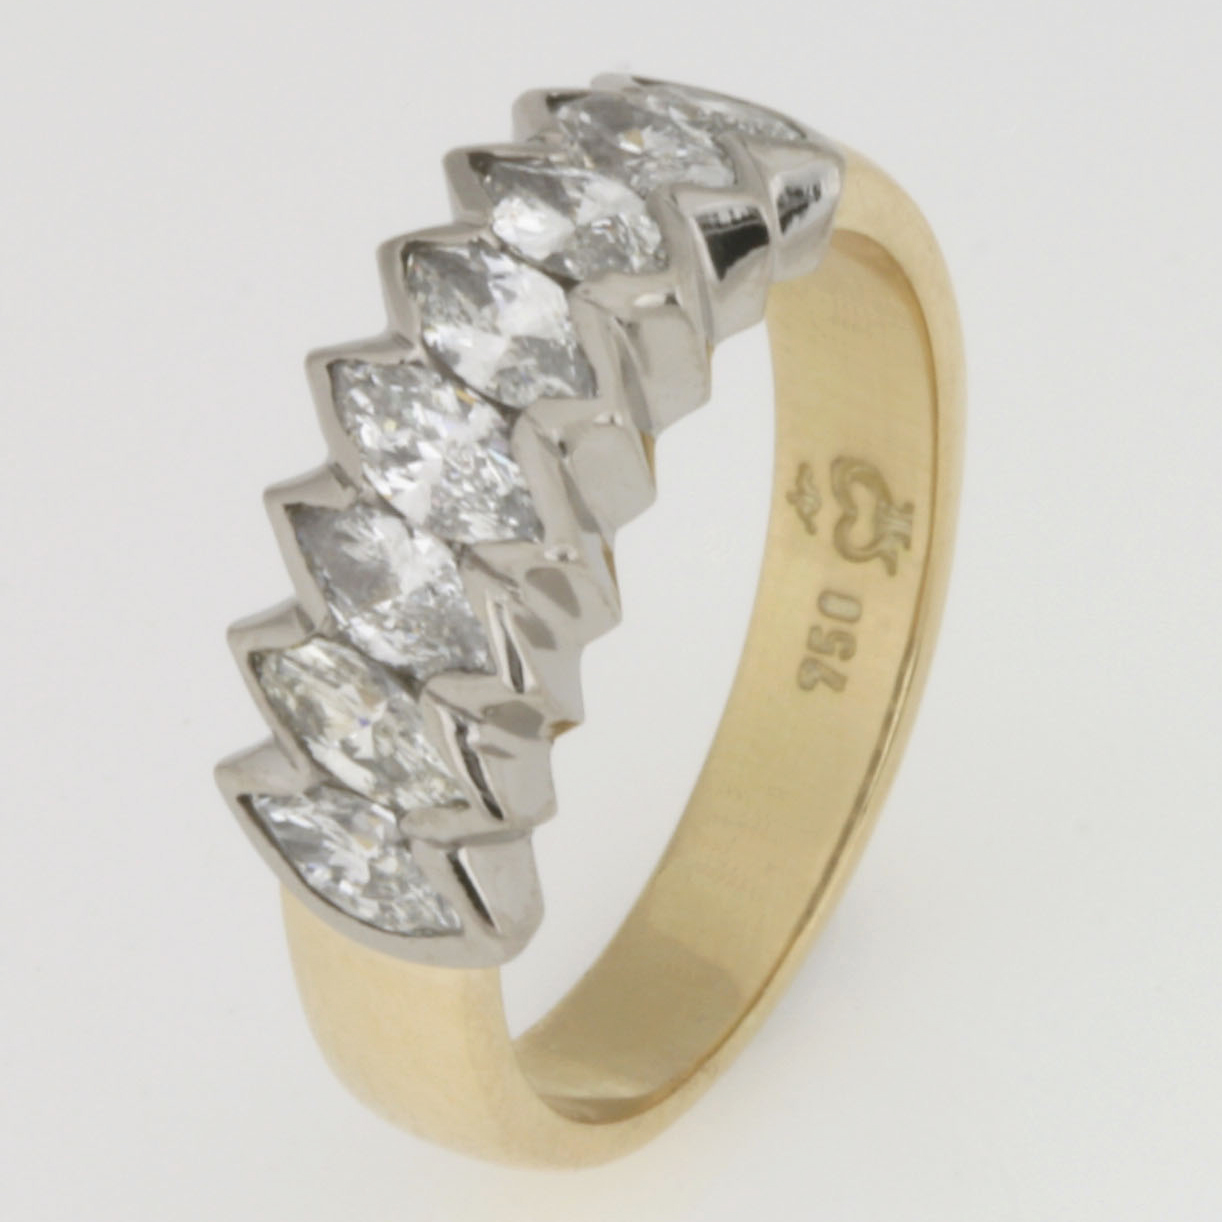 Handmade ladies 18ct yellow and white gold ring featuring marquise diamonds